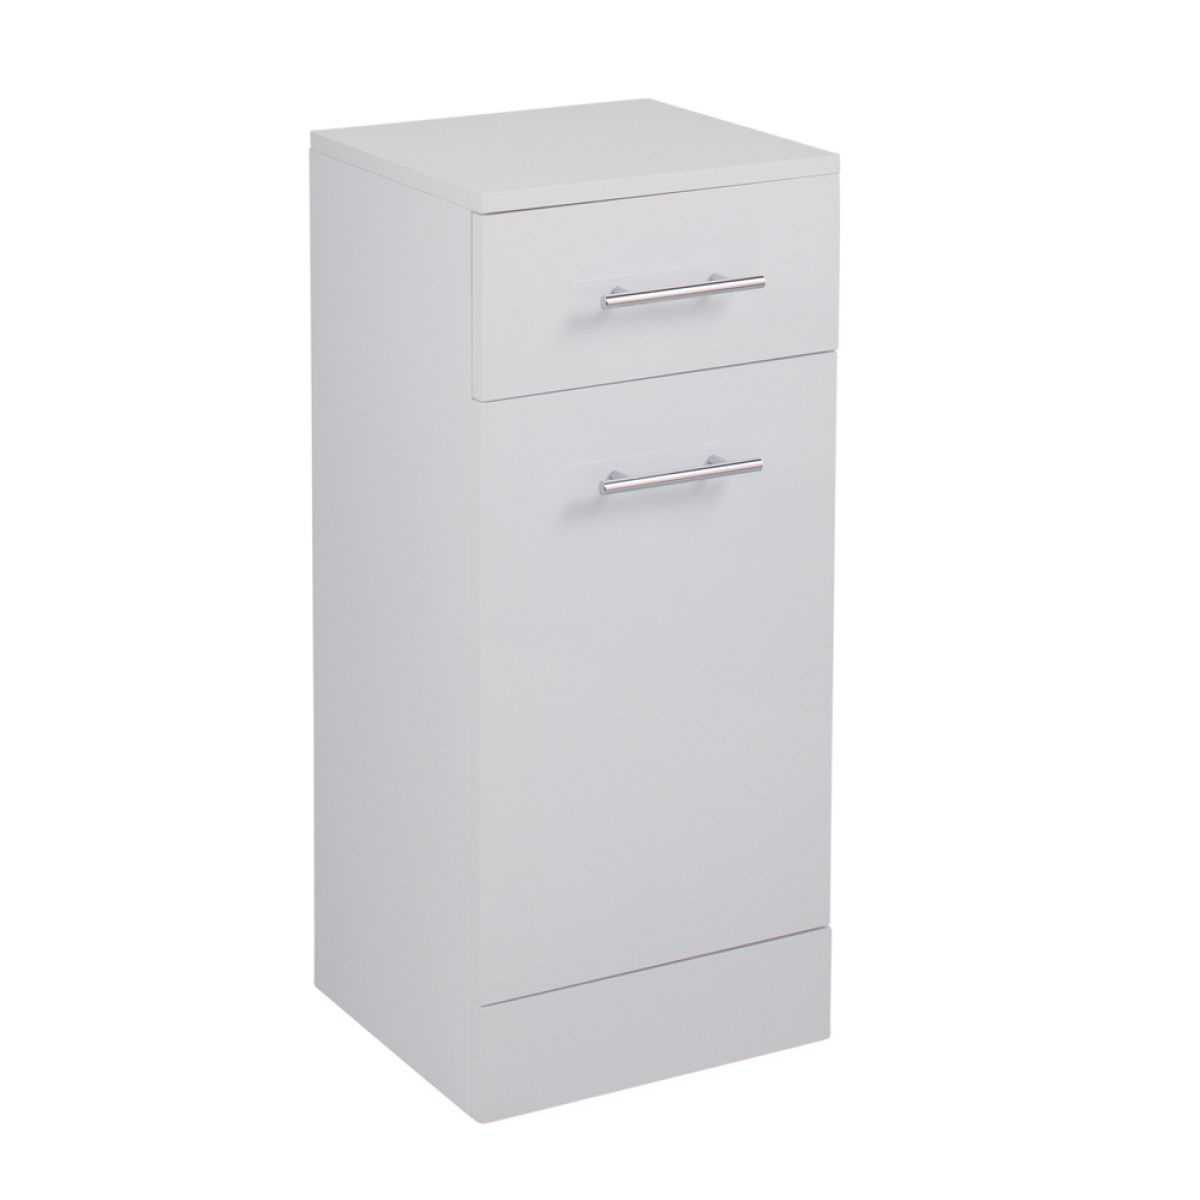 Cassellie Kass Gloss White Laundry Unit 300mm